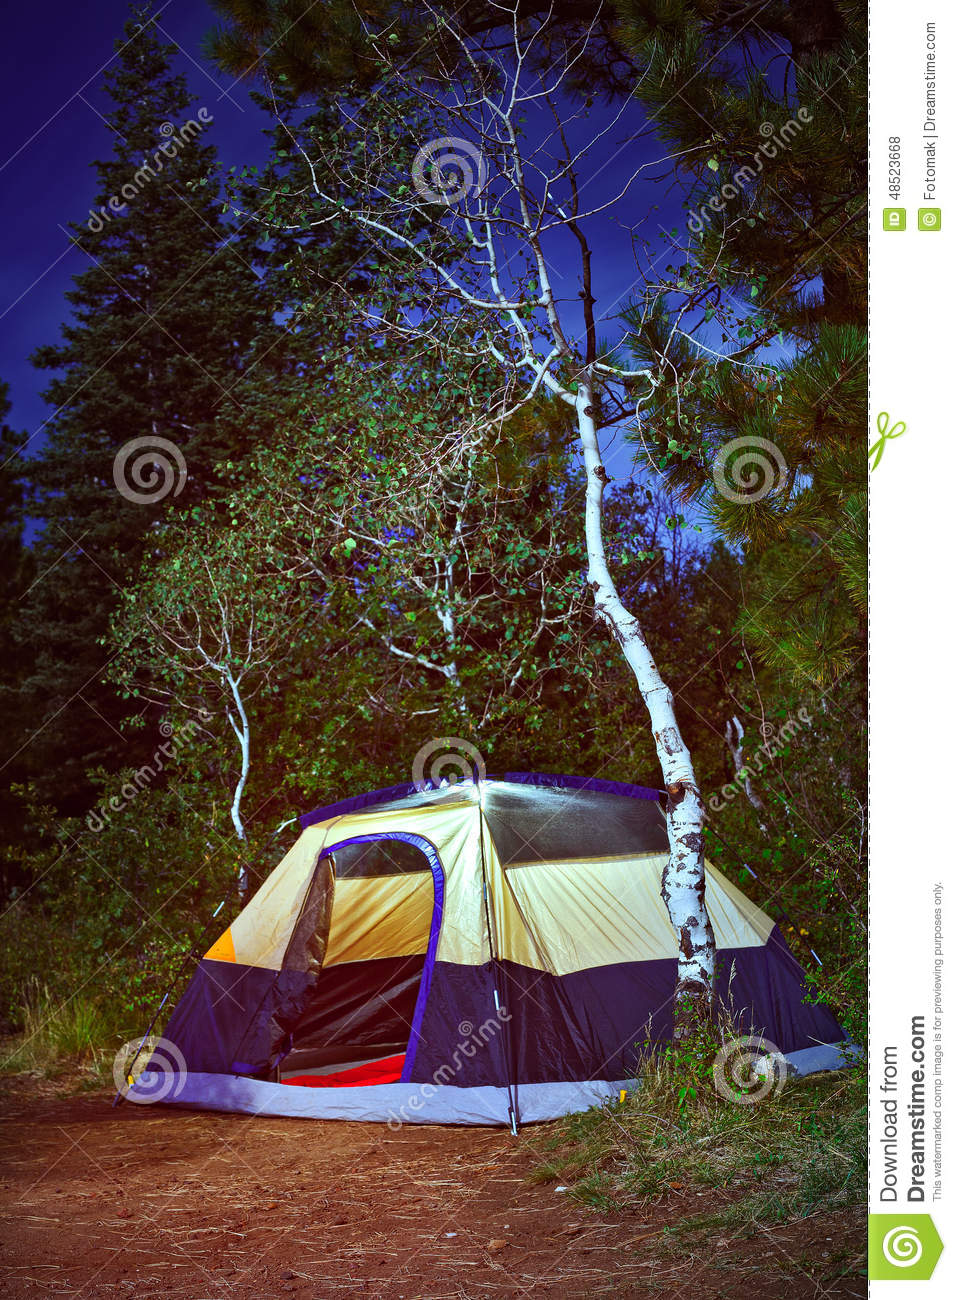 Camping Tent In The Forest At Night Stock Photo